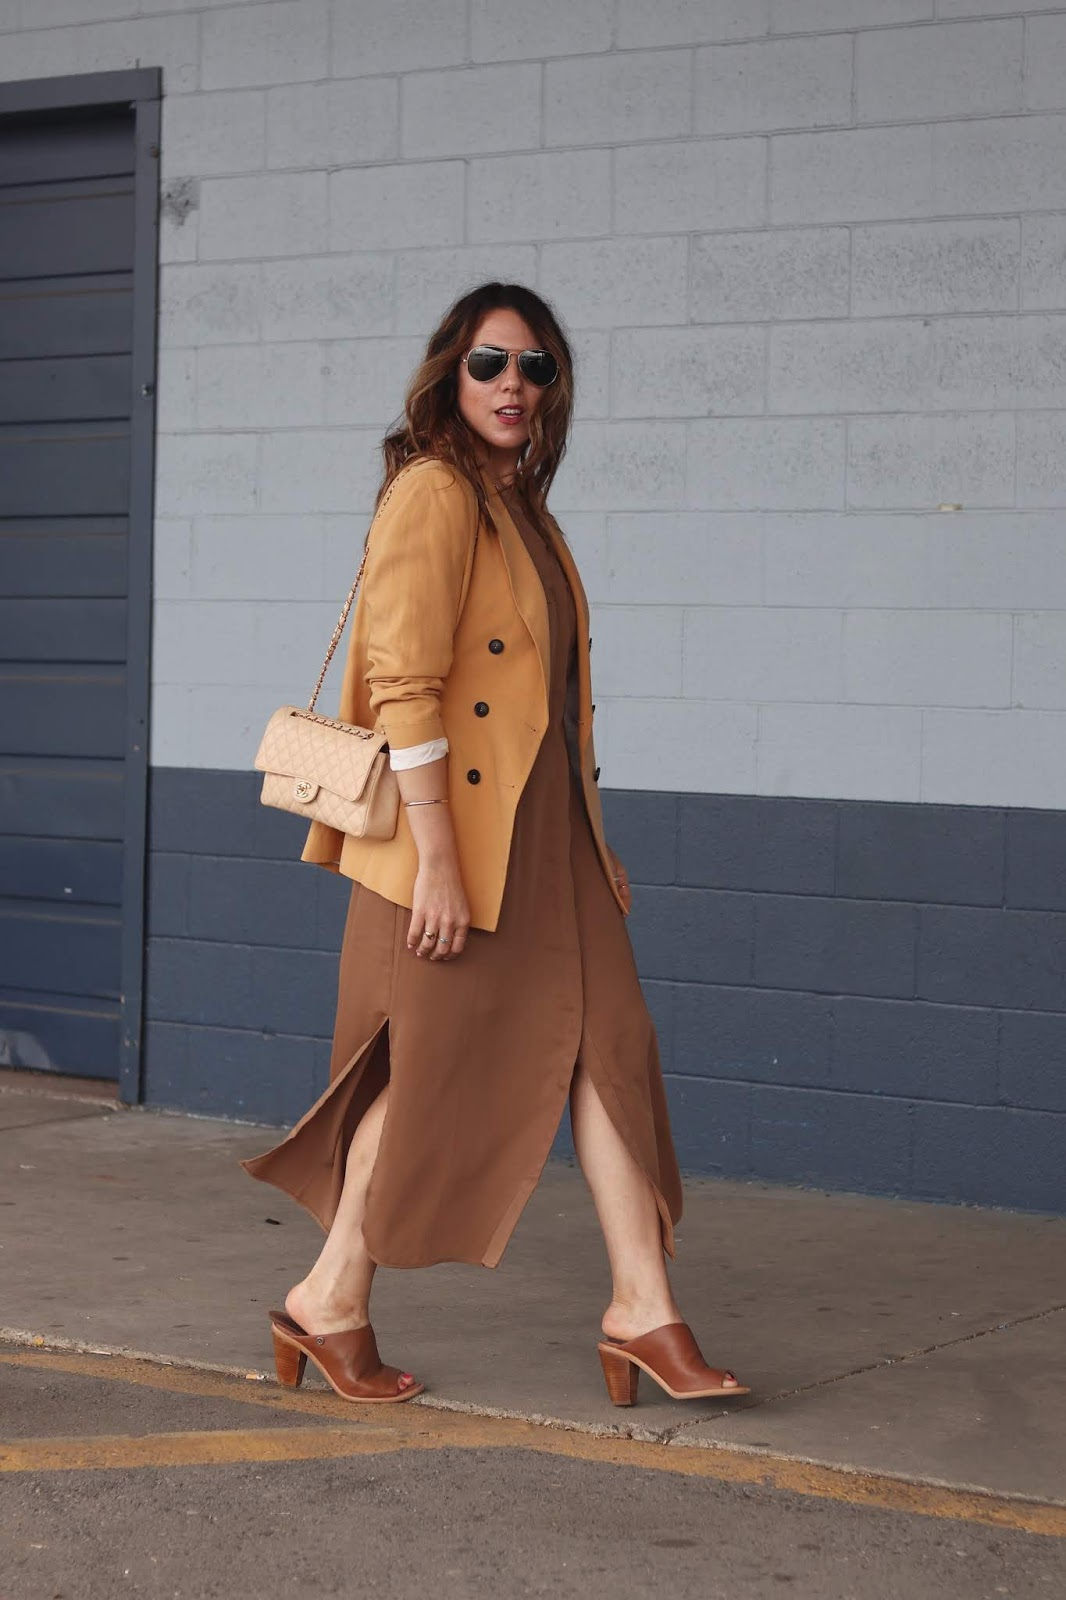 Le Chateau maxi dress and blazer outfit aleesha harris yellow blazer outfit